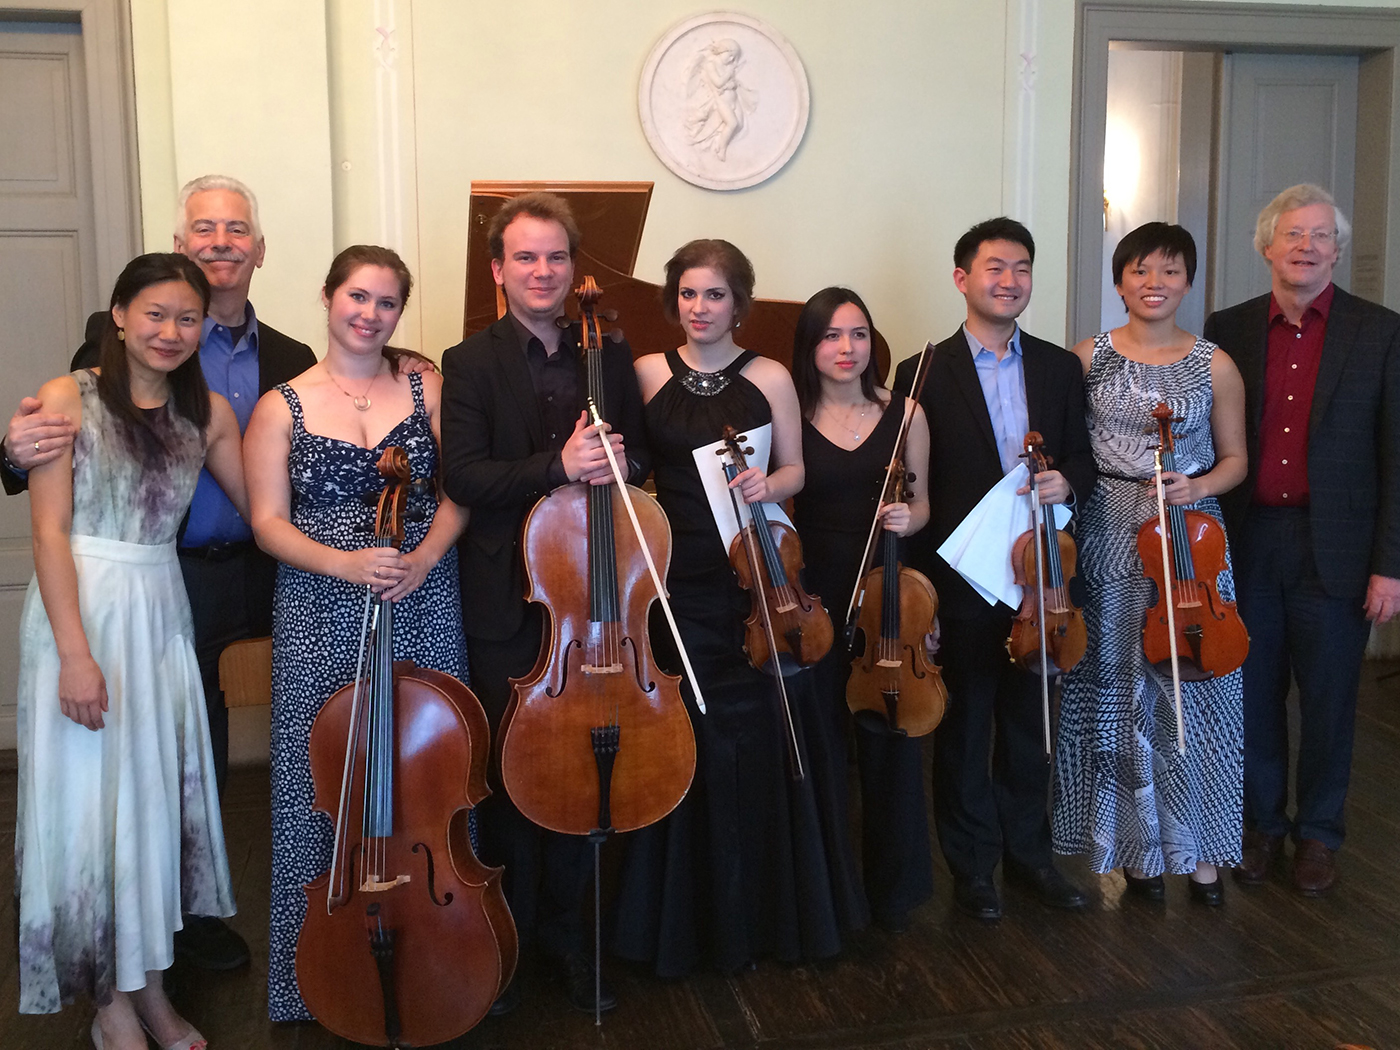 Shepherd School of Music/Leipzig exchange, 2015    Norman Fischer with Shepherd School students and Leipzig Hochscule students after their concert together at Felix Mendelssohn's house